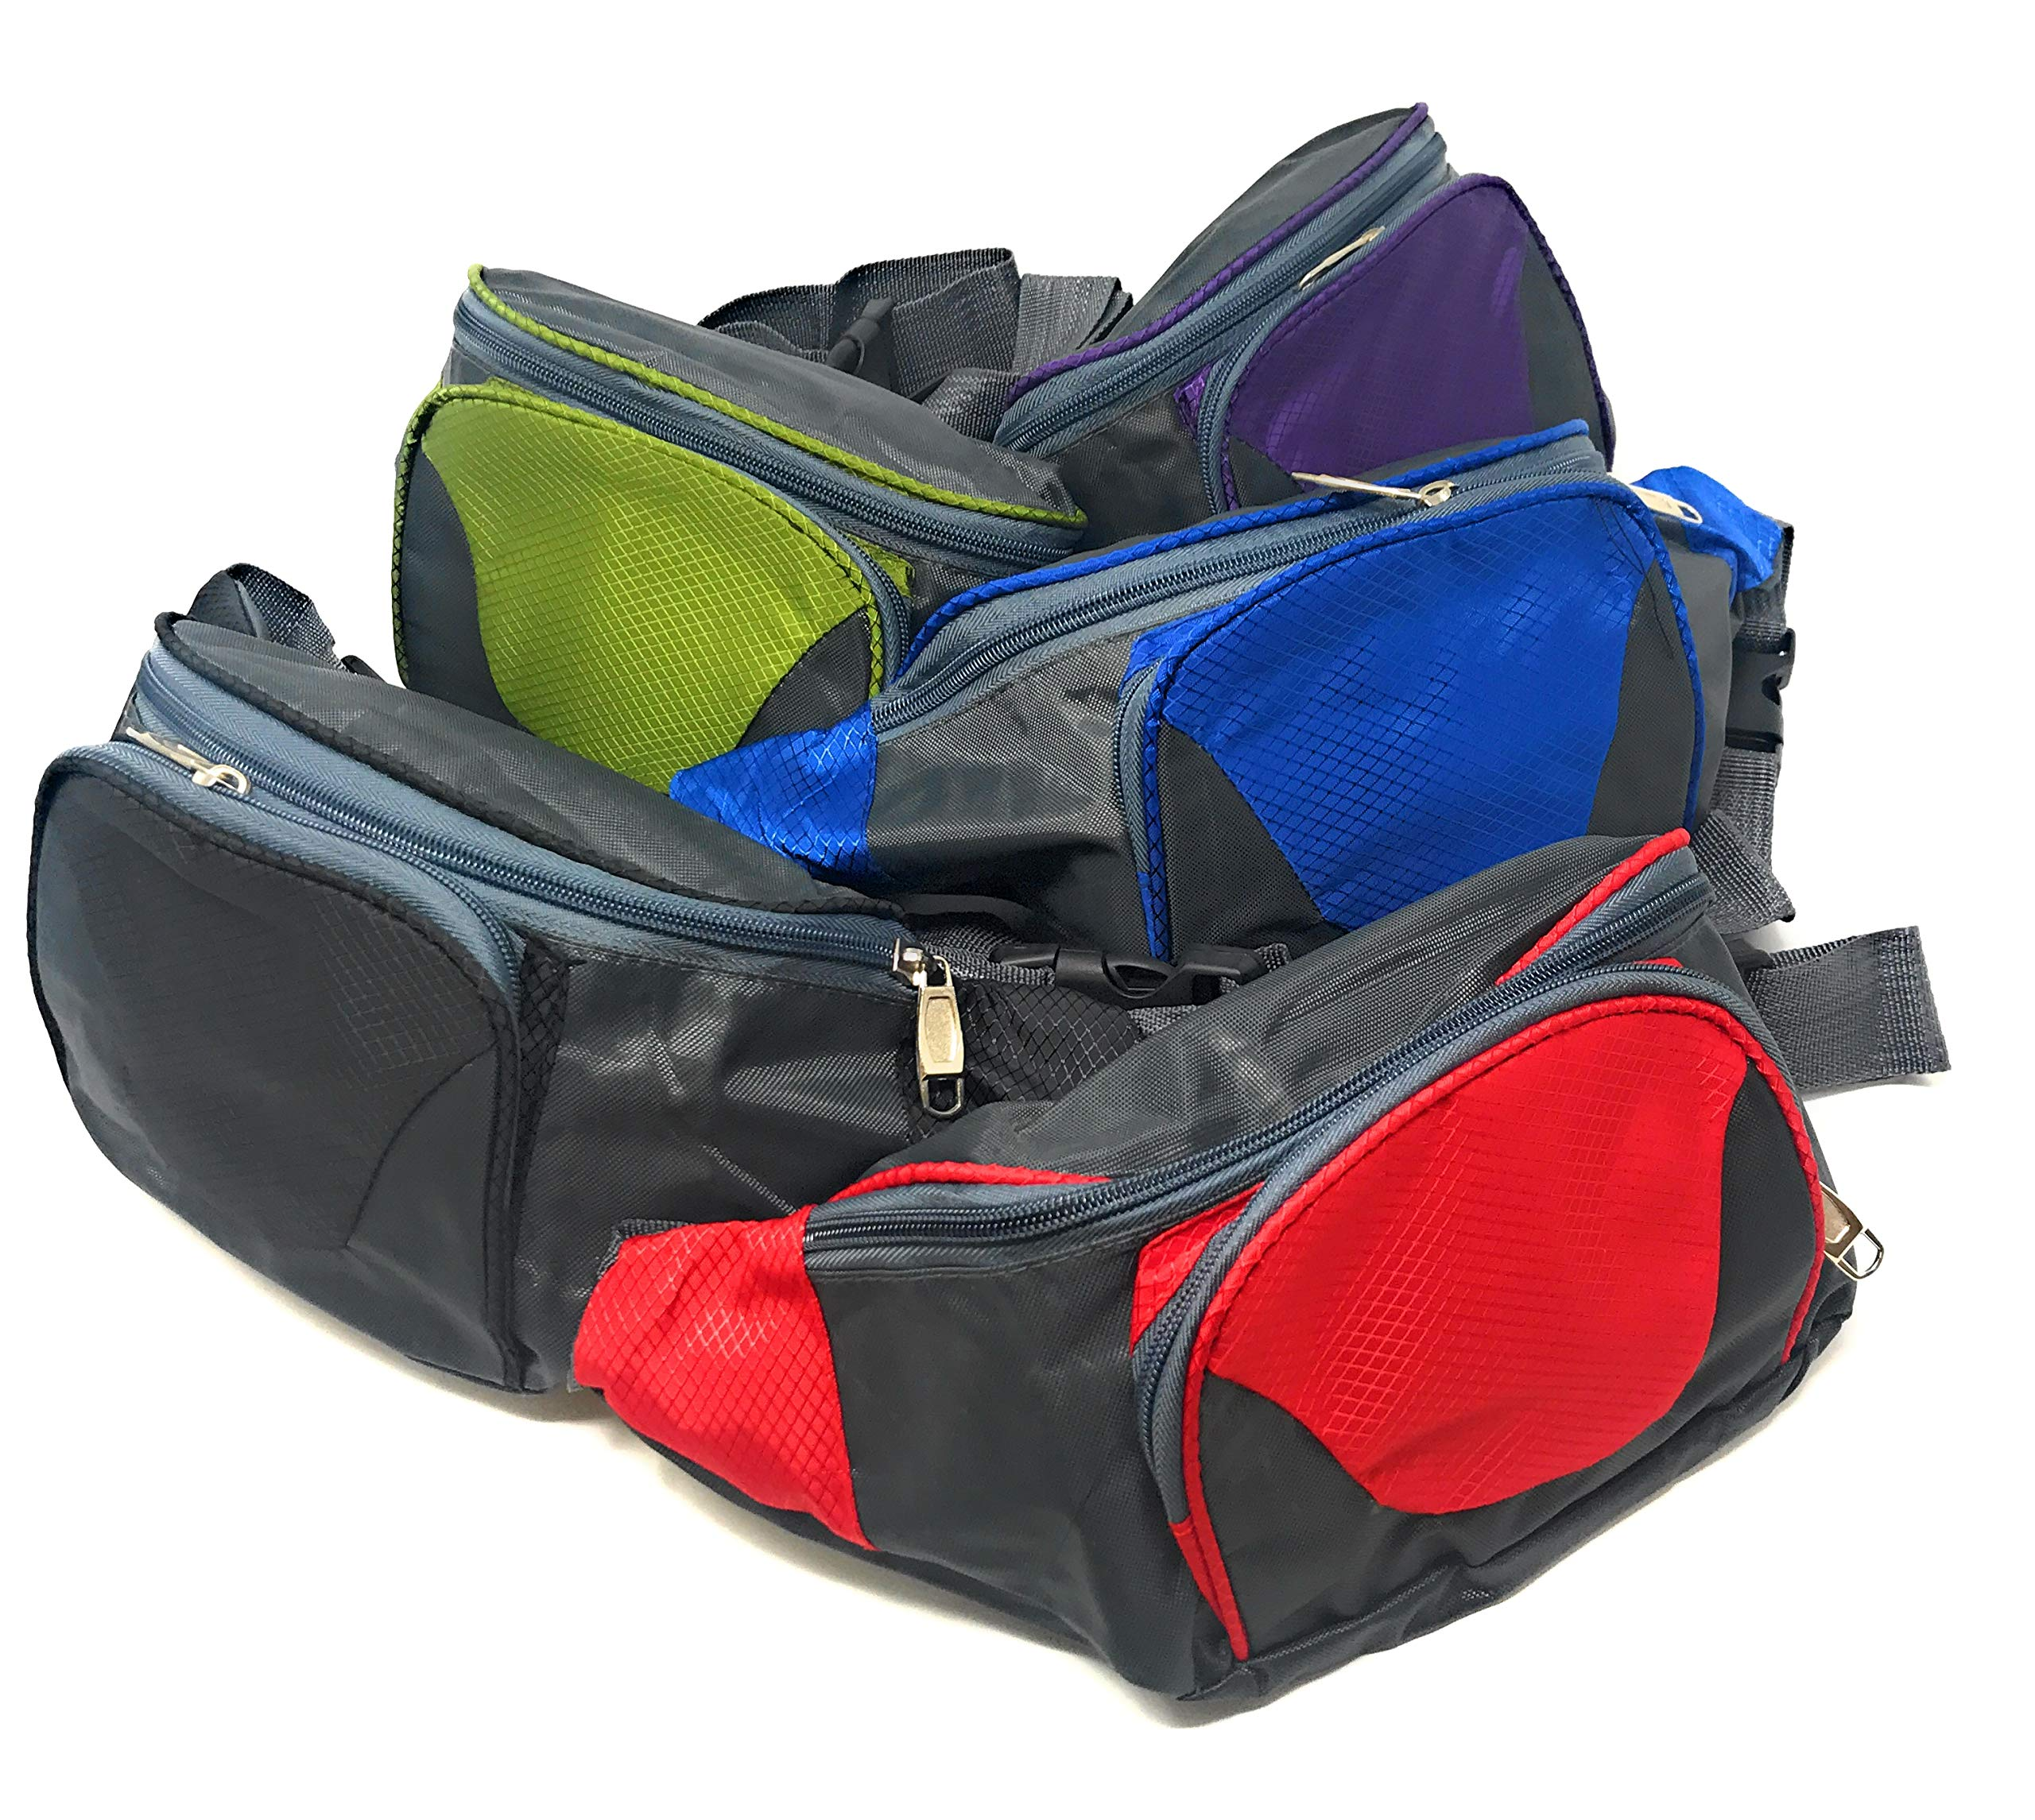 Bulk 5 Piece Travel and Hiking Fanny Pack Assortment by Funiverse